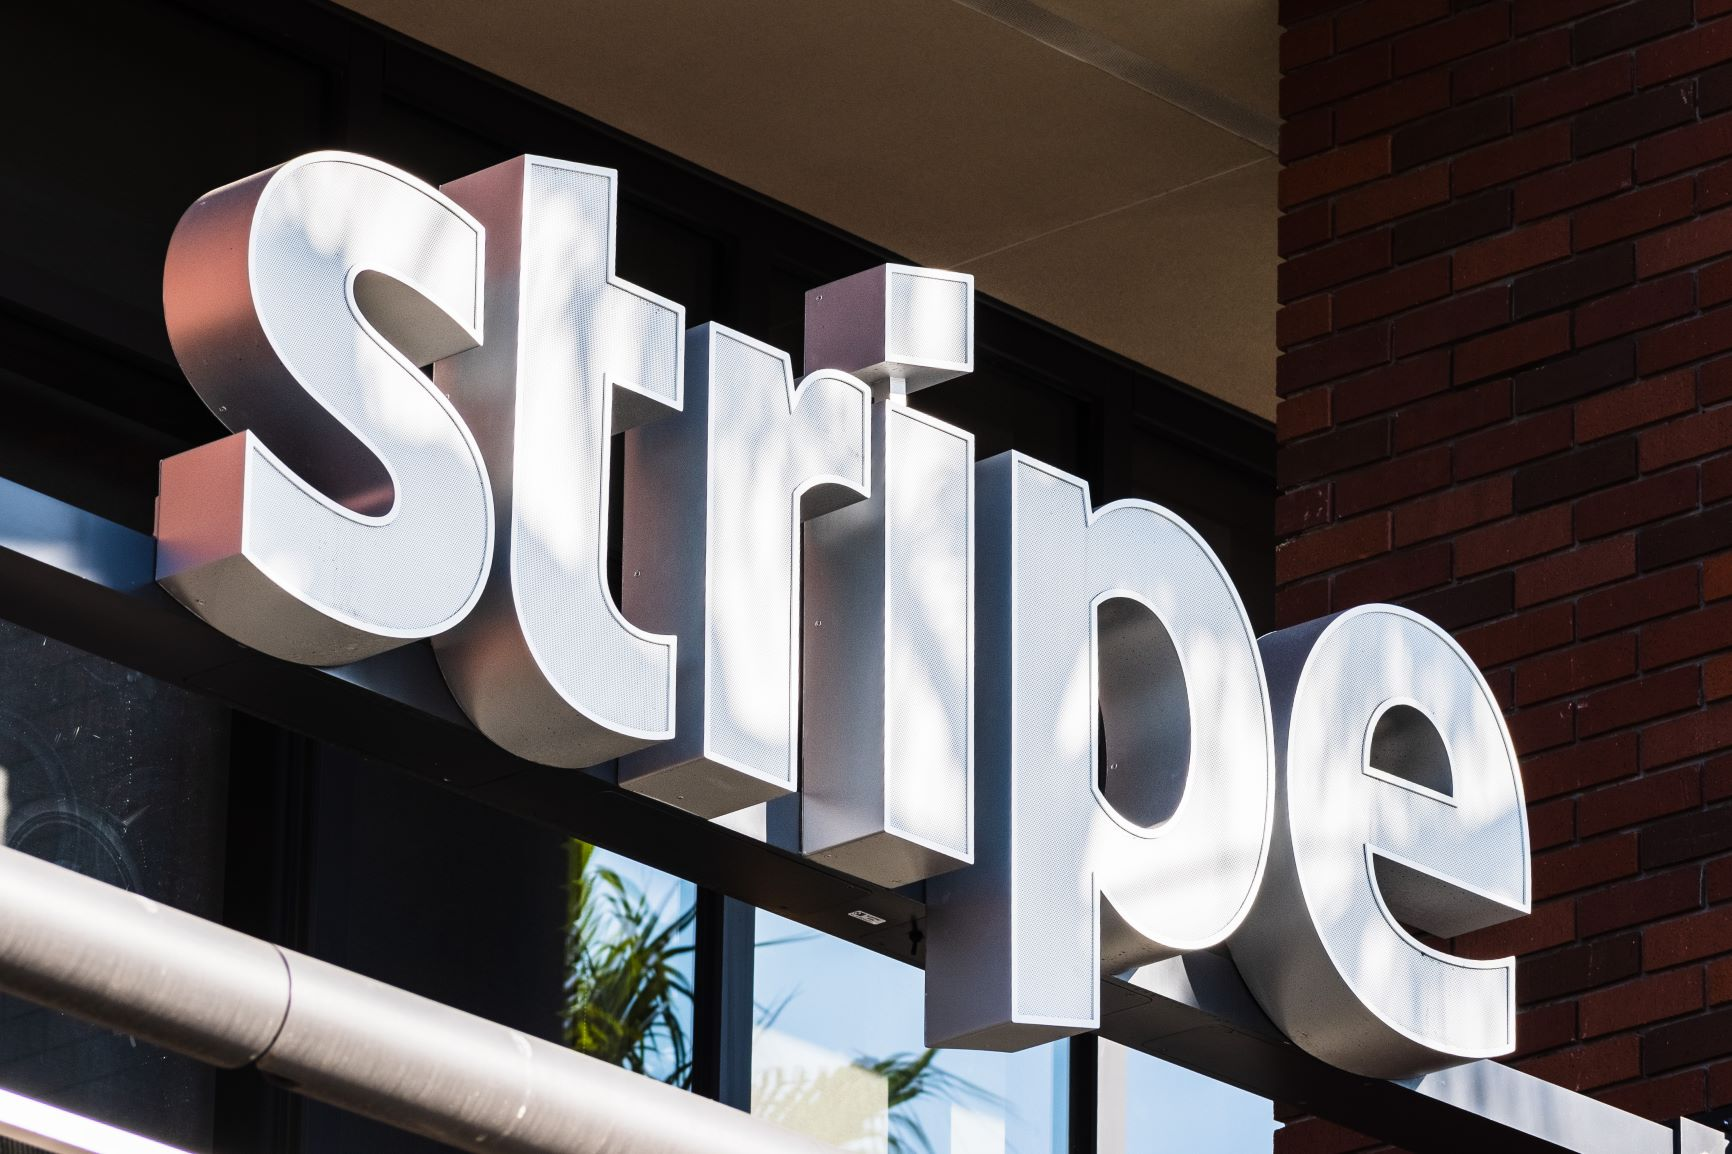 Stripe acquires Nigeria's Paystack: Game-changer for Africa fintech